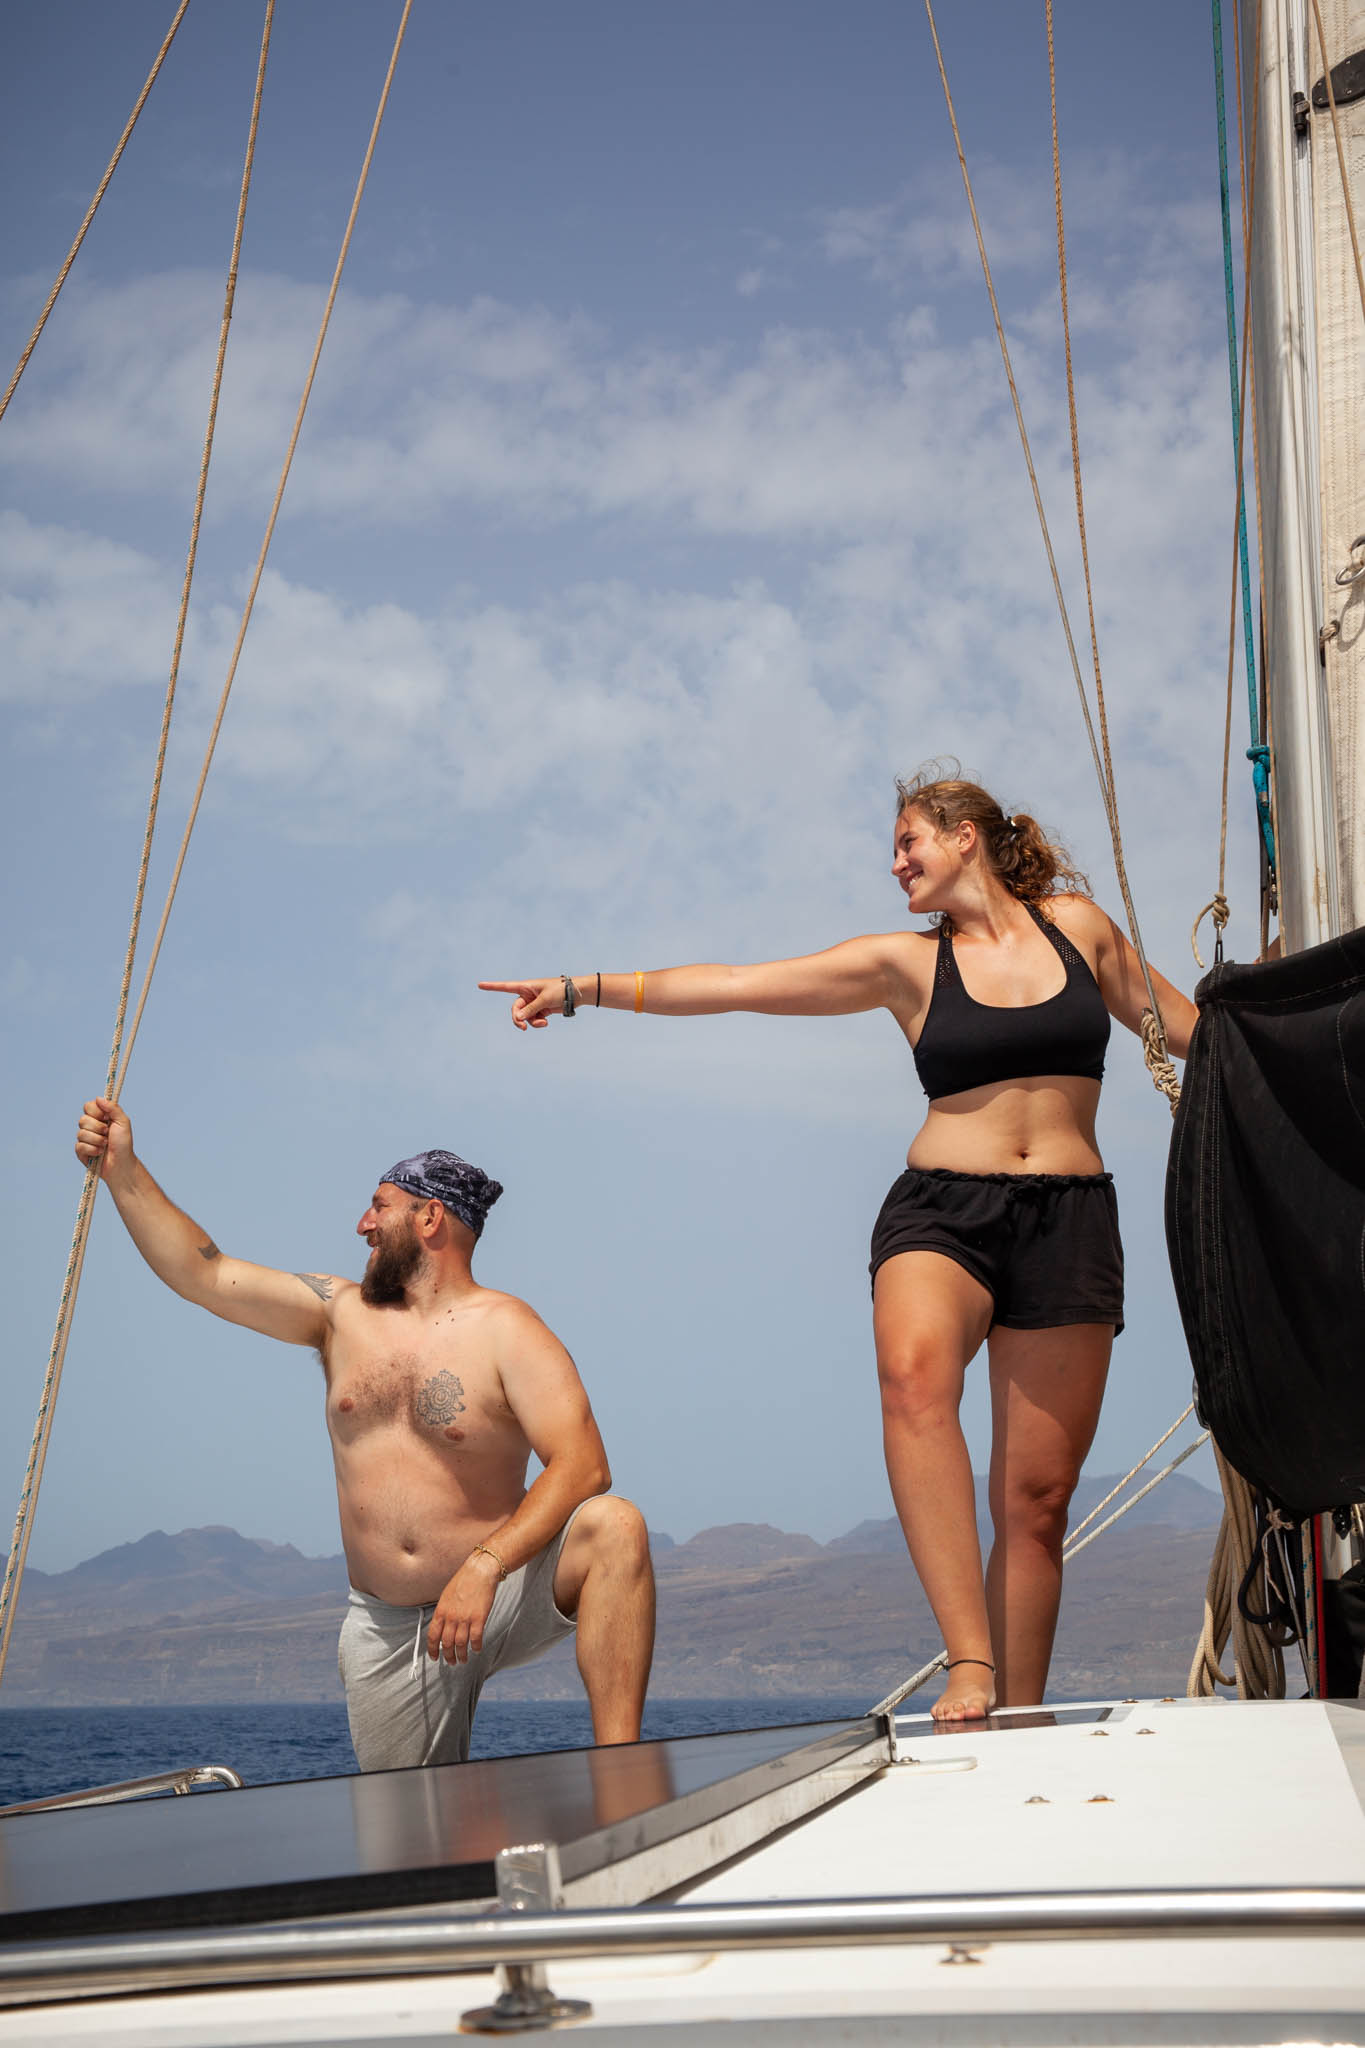 Magda and Darko. Travelers, hitchhikers, adventurers. They joined us in the Canary Islands and were part of our crew on the Atlantic crossing. We spent two months together. From the Canary Islands we sailed to Cape Verde, where we stayed for a few weeks waiting for the right wind. Then, for 17.5 days, we sailed to the Caribbean Islands. On December 5 landed in Martinique, where our paths diverged